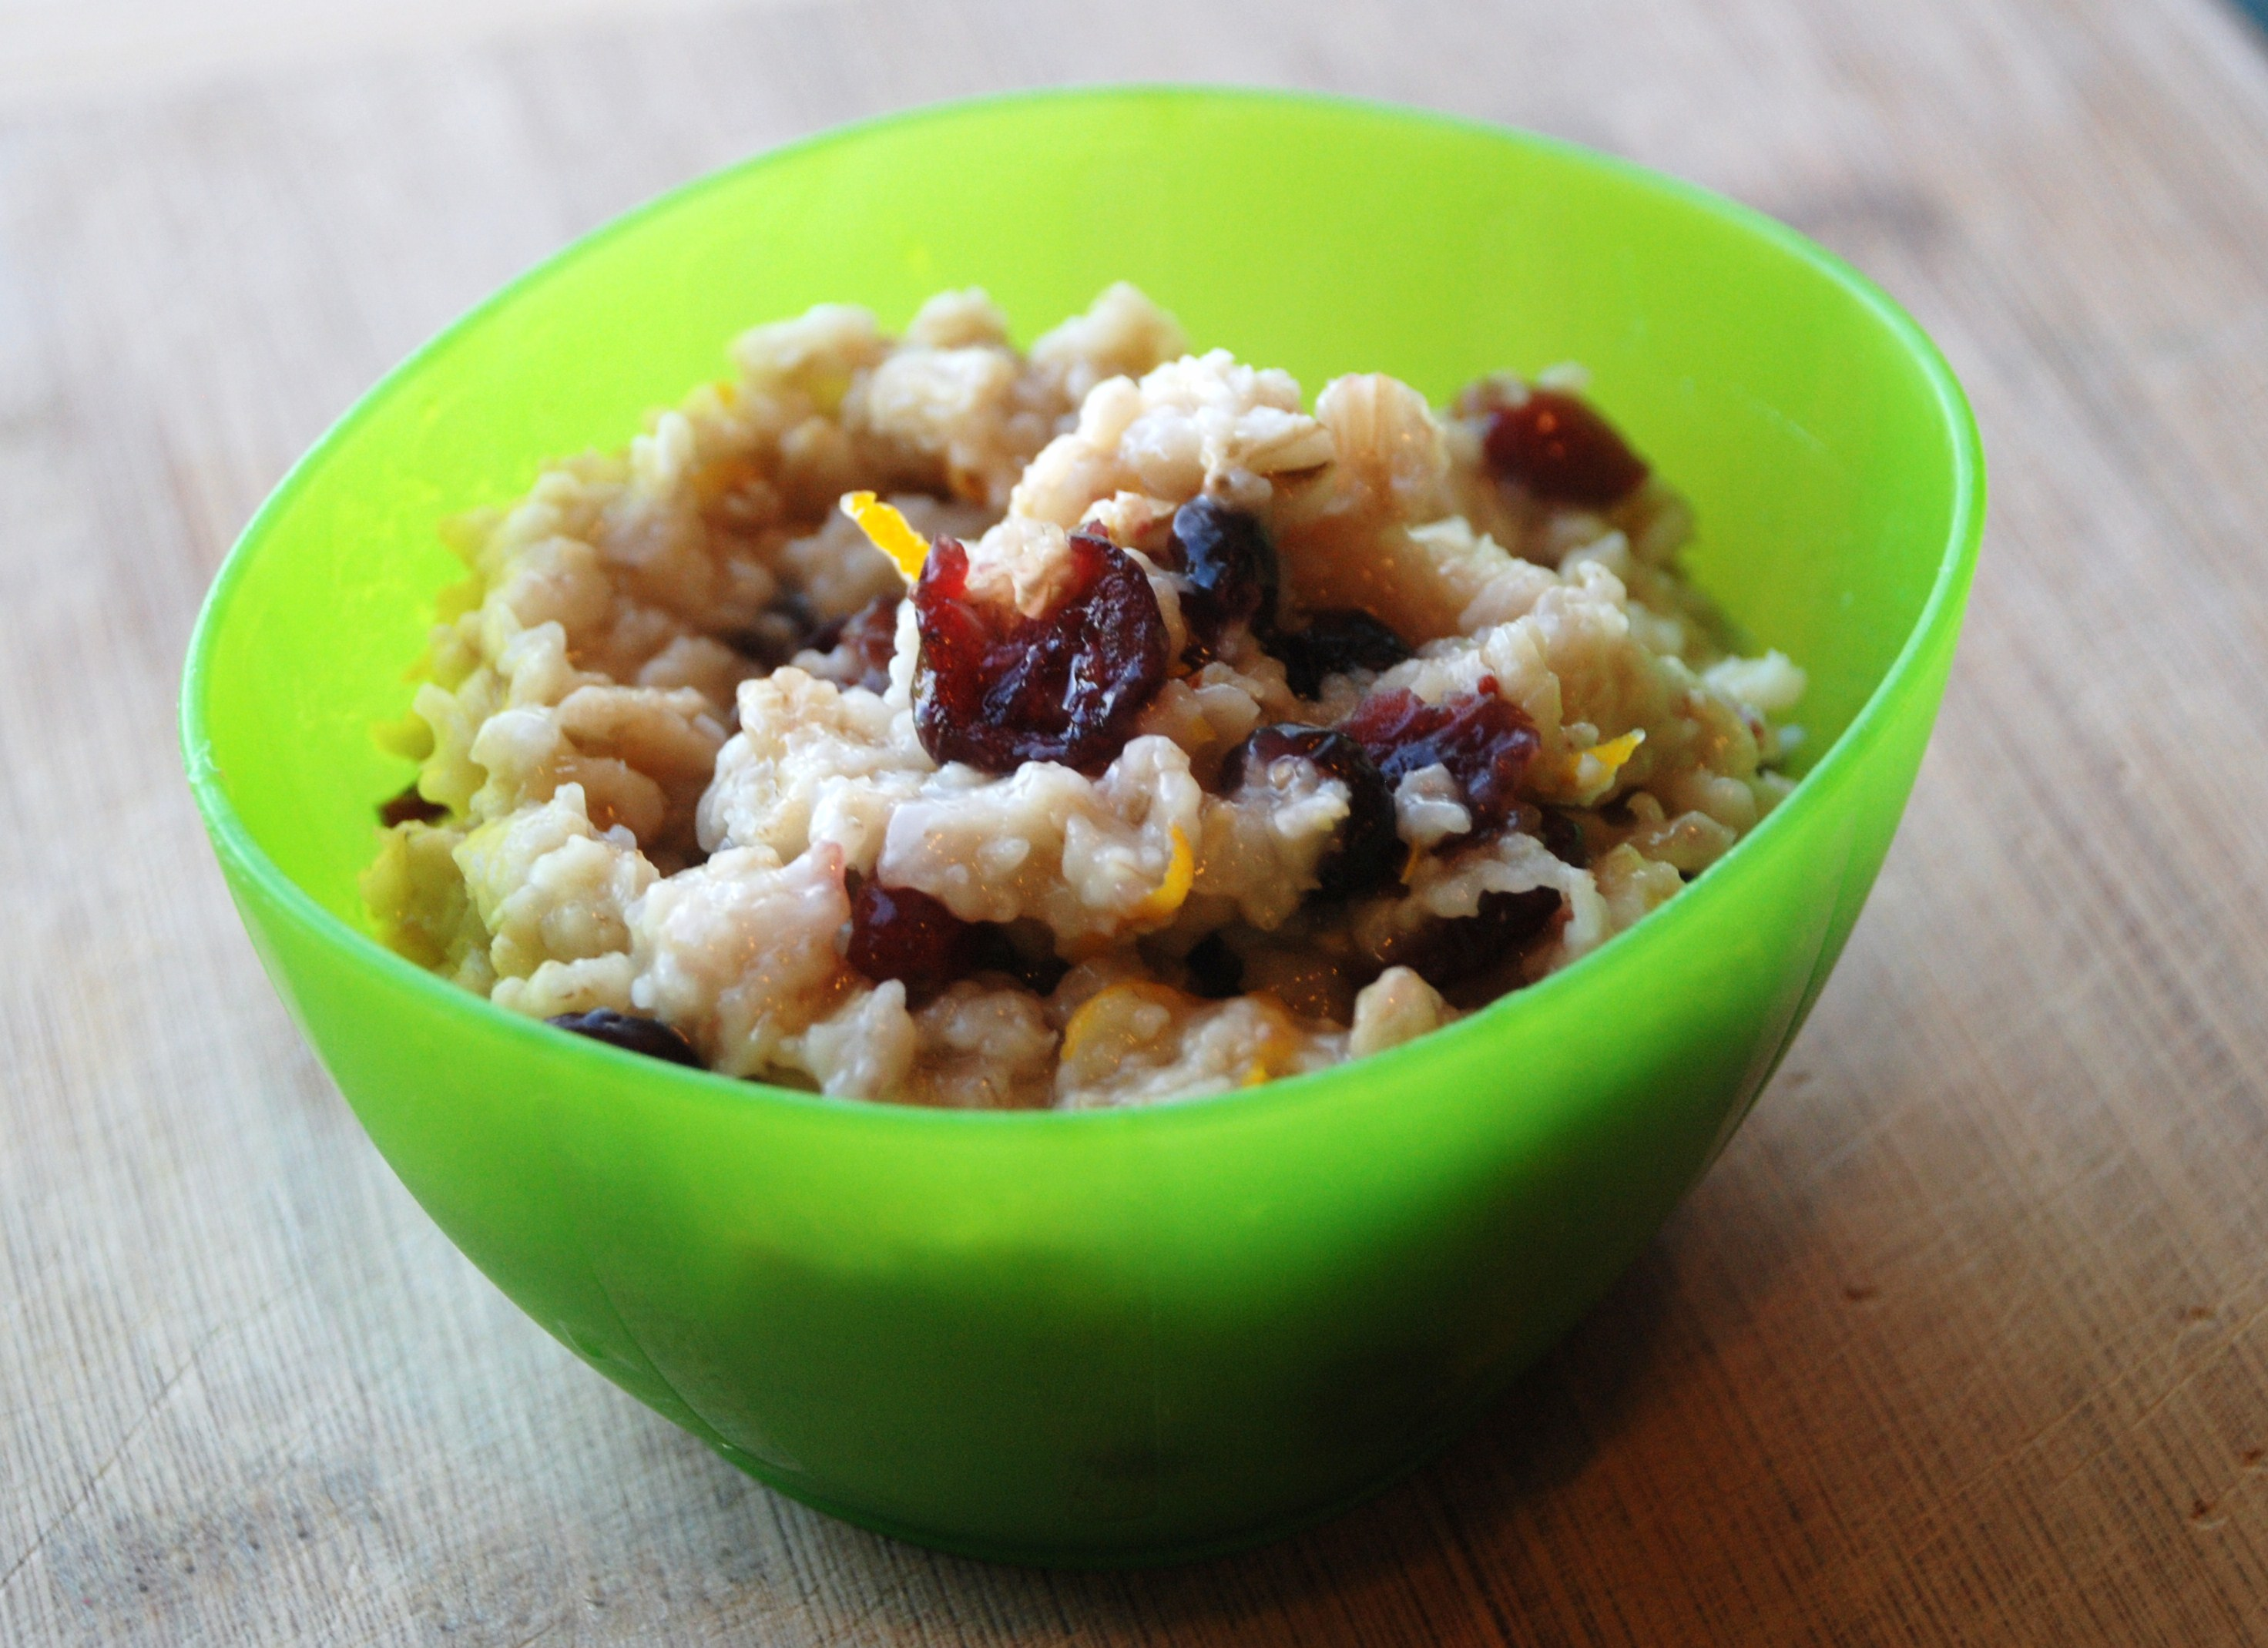 photo Bring On The Oatmeal: Every Serving Of Whole Grains Helps Lower Your Risk Of Death 5